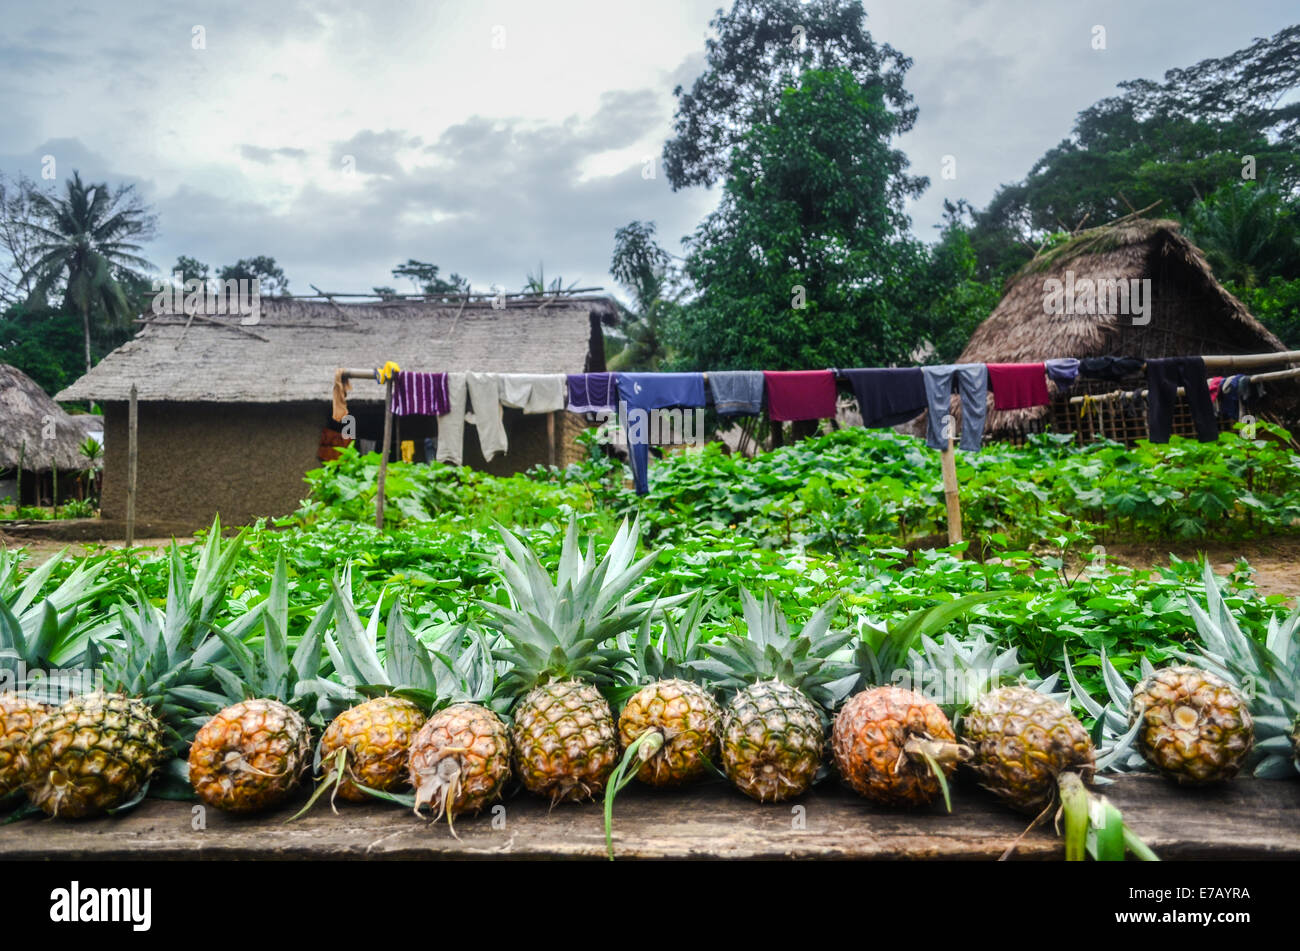 Pineapples for sale by the road in a remote village of Sierra Leone - Stock Image